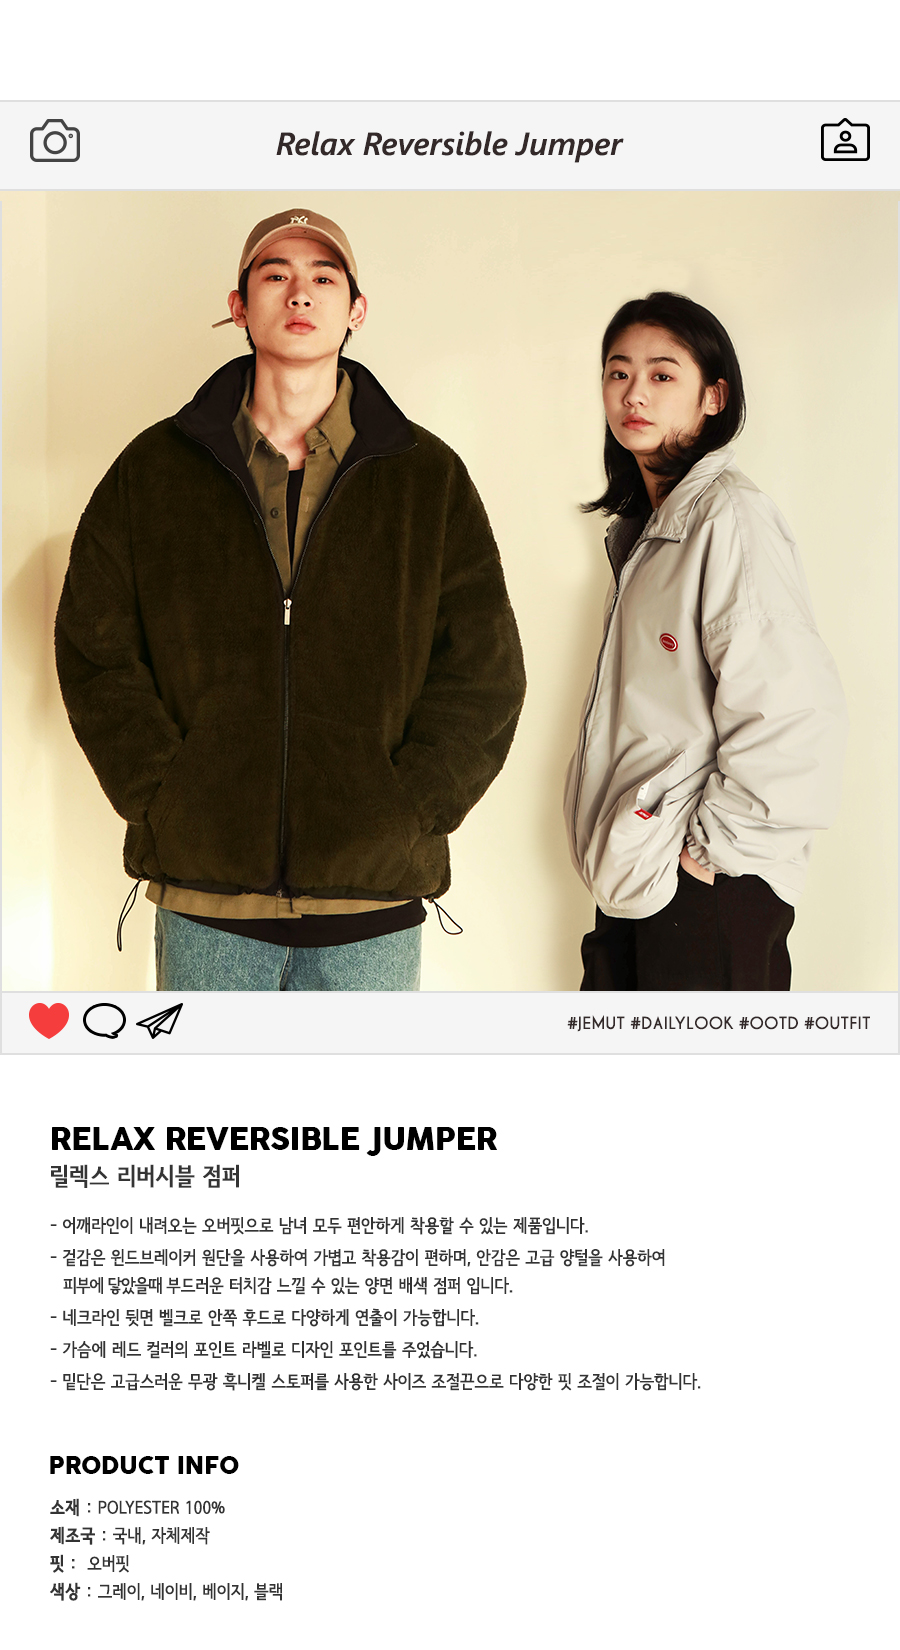 20190128_relax_reversible_jumper_title_yh.jpg